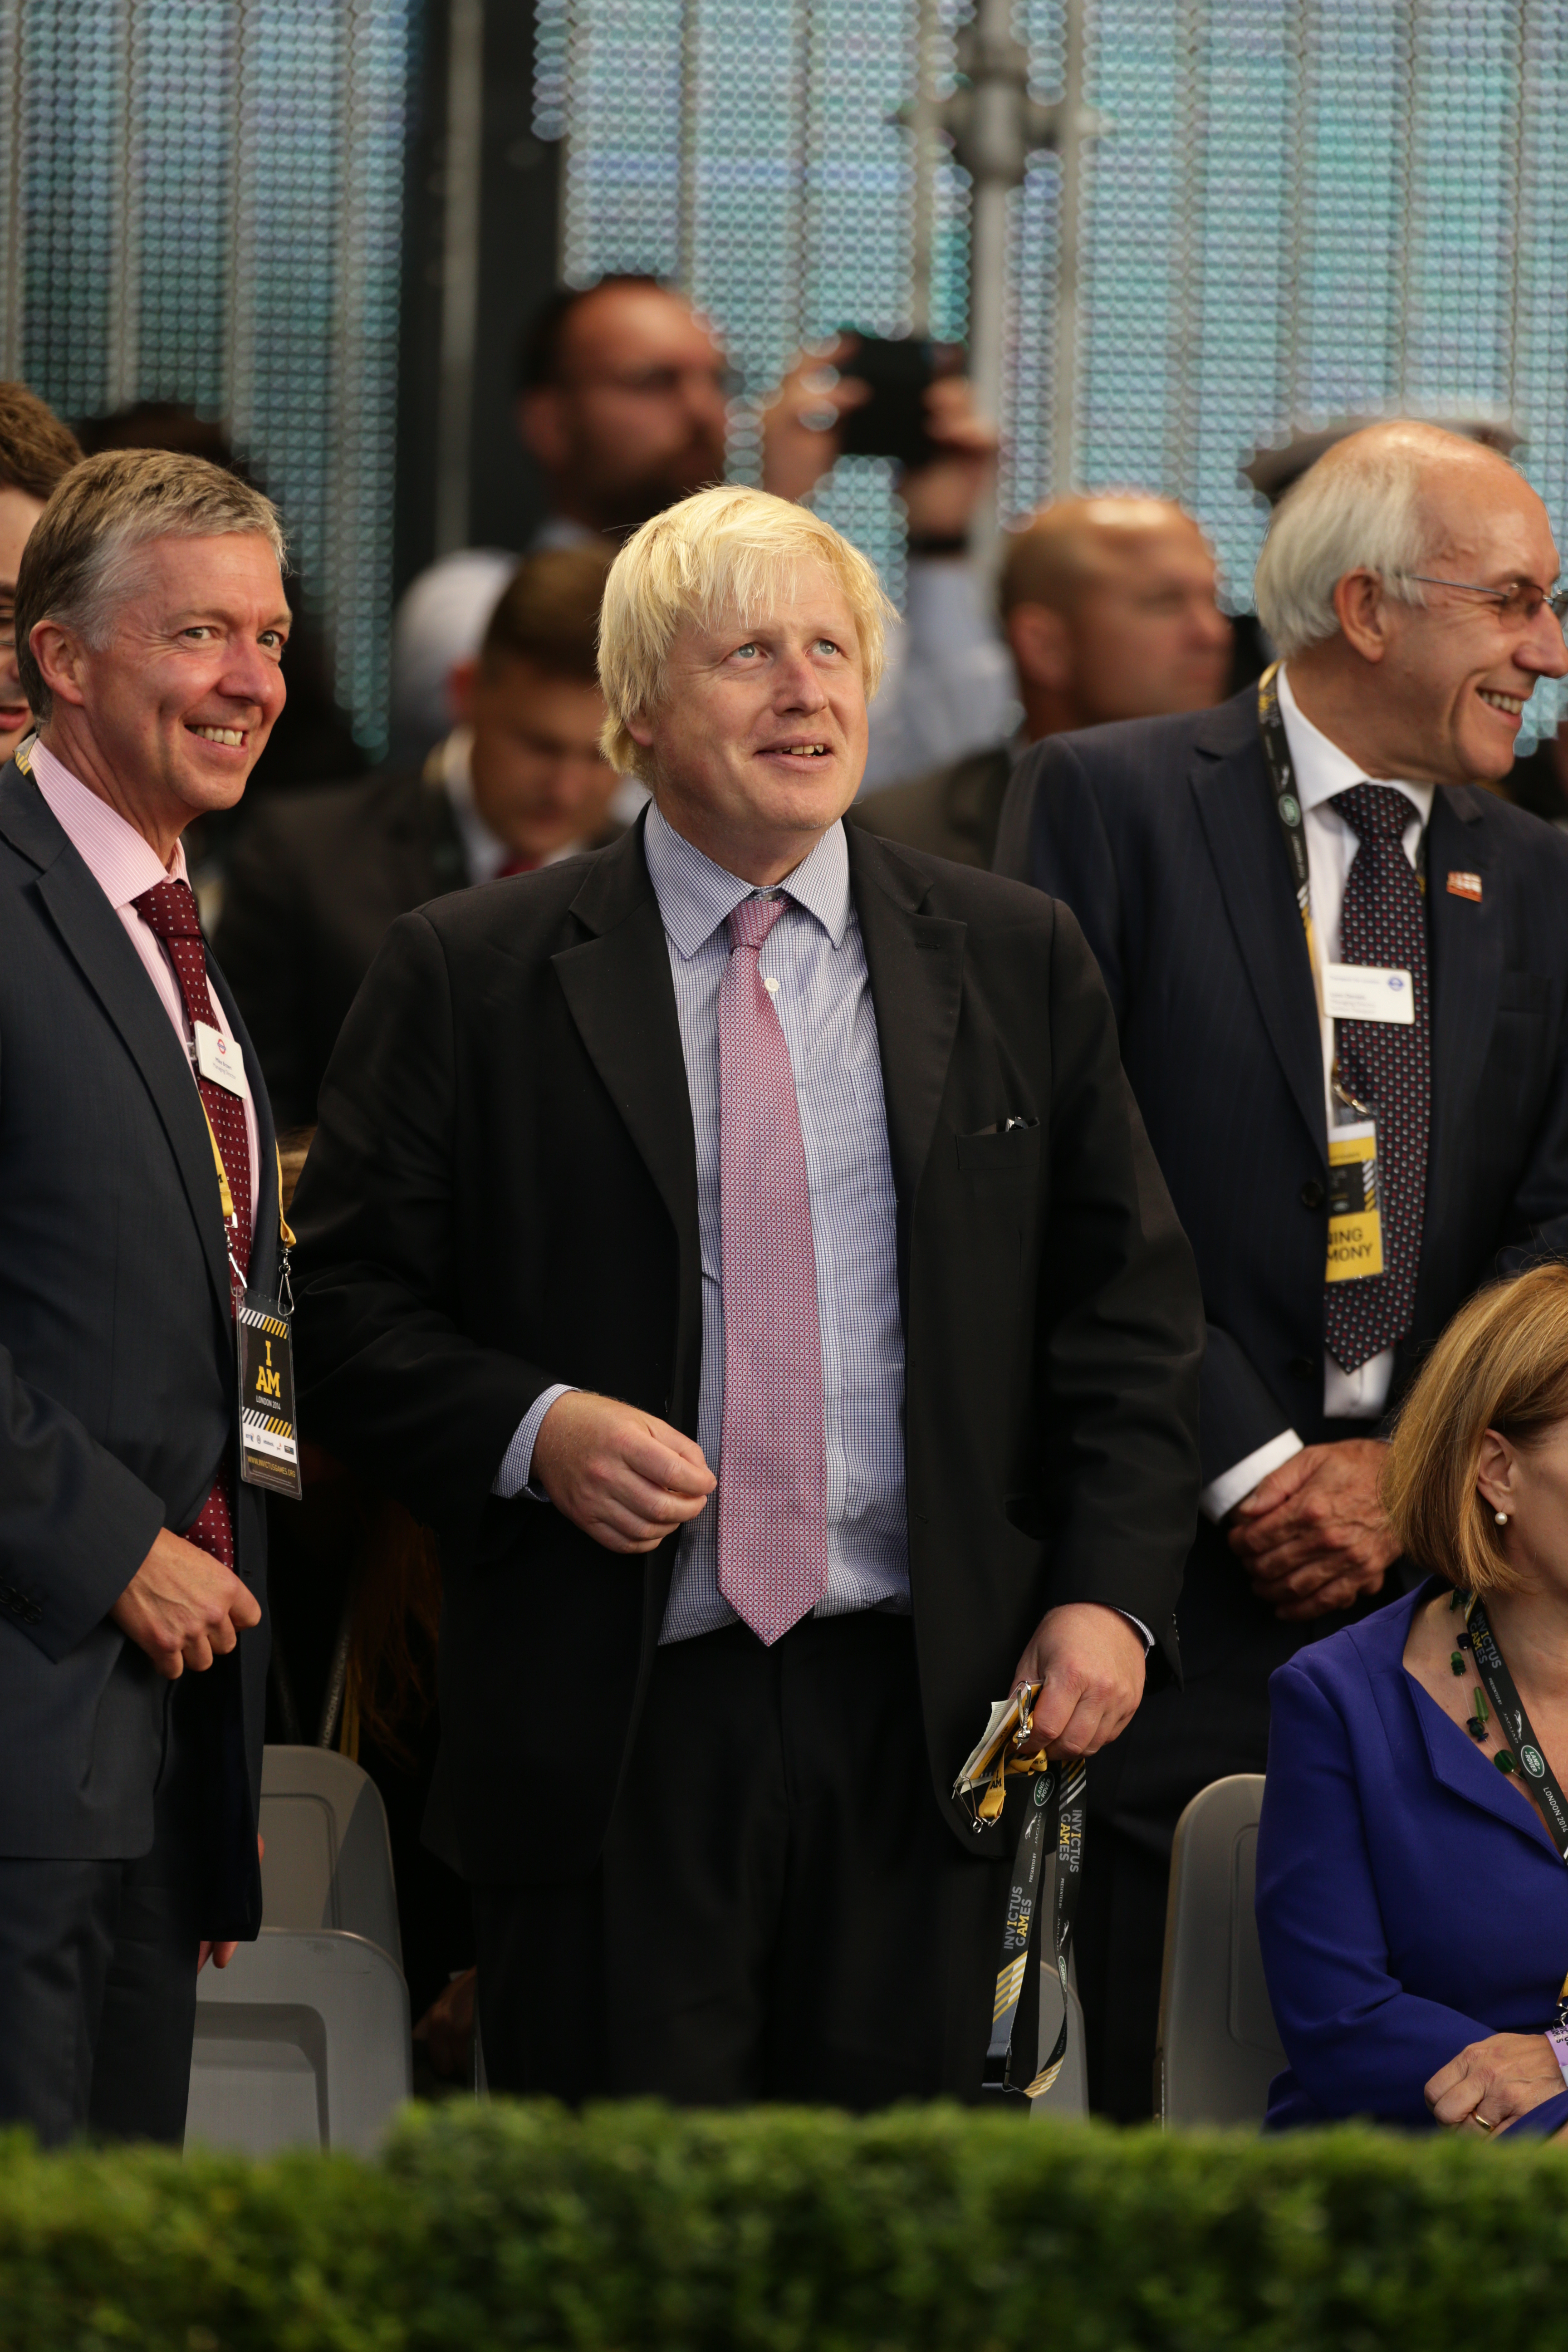 Mayor of London Boris Johnson (left) during the opening ceremony of he Invictus Games at the Queen Elizabeth Olympic Park, London.